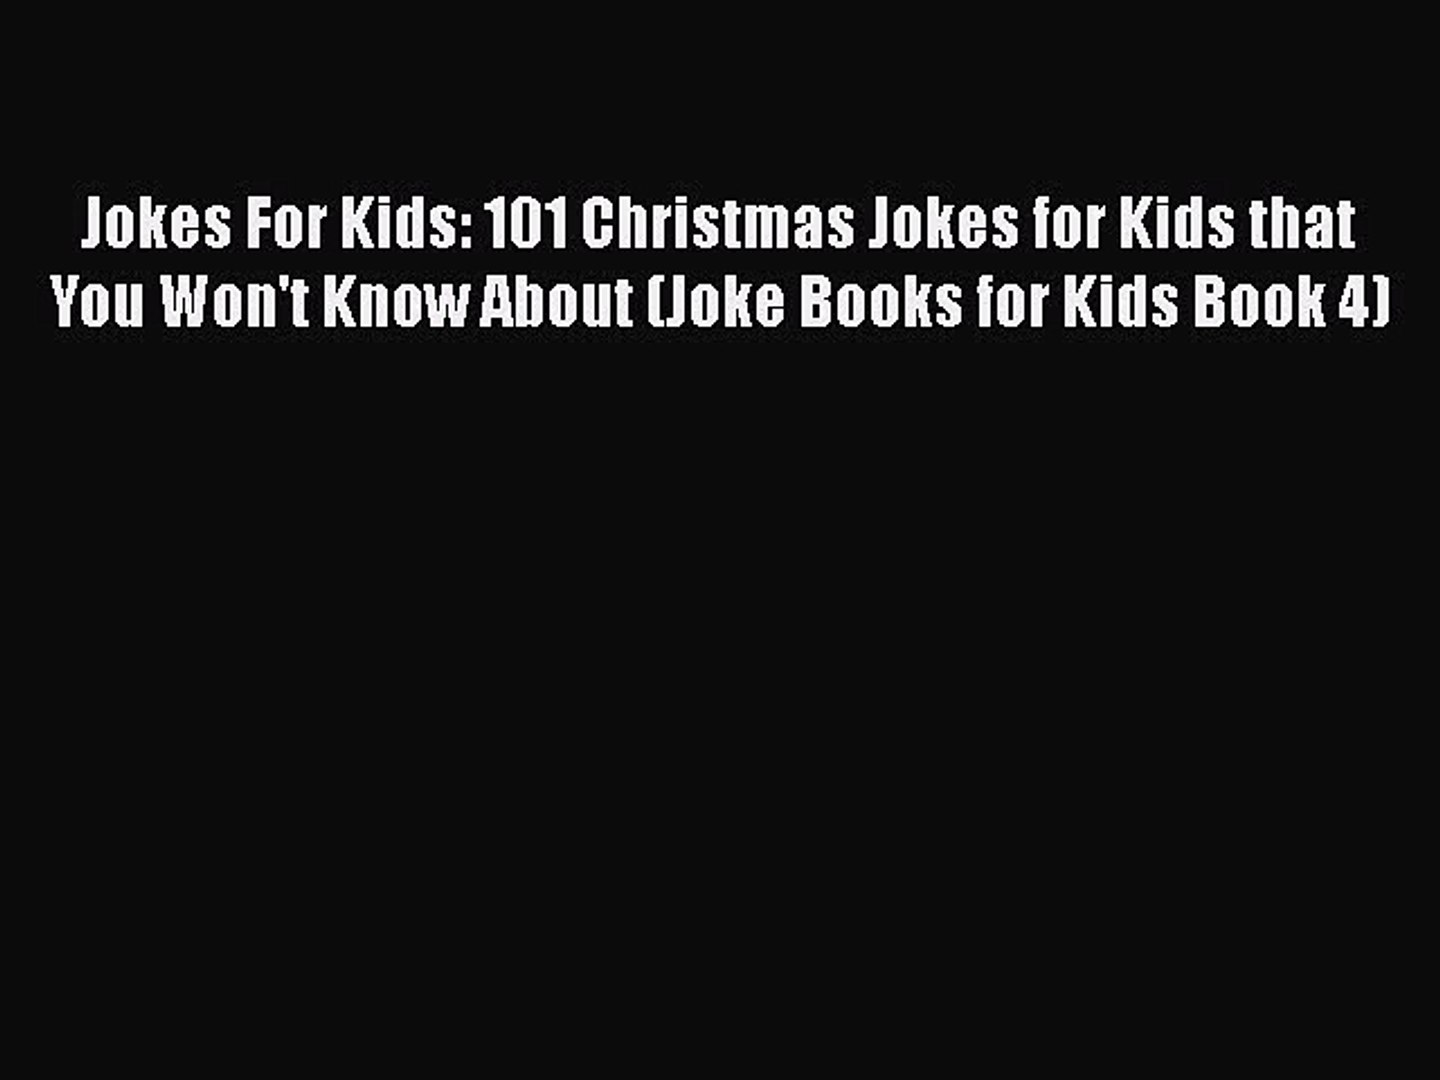 PDF Jokes For Kids: 101 Christmas Jokes for Kids that You Won't Know About (Joke Books for